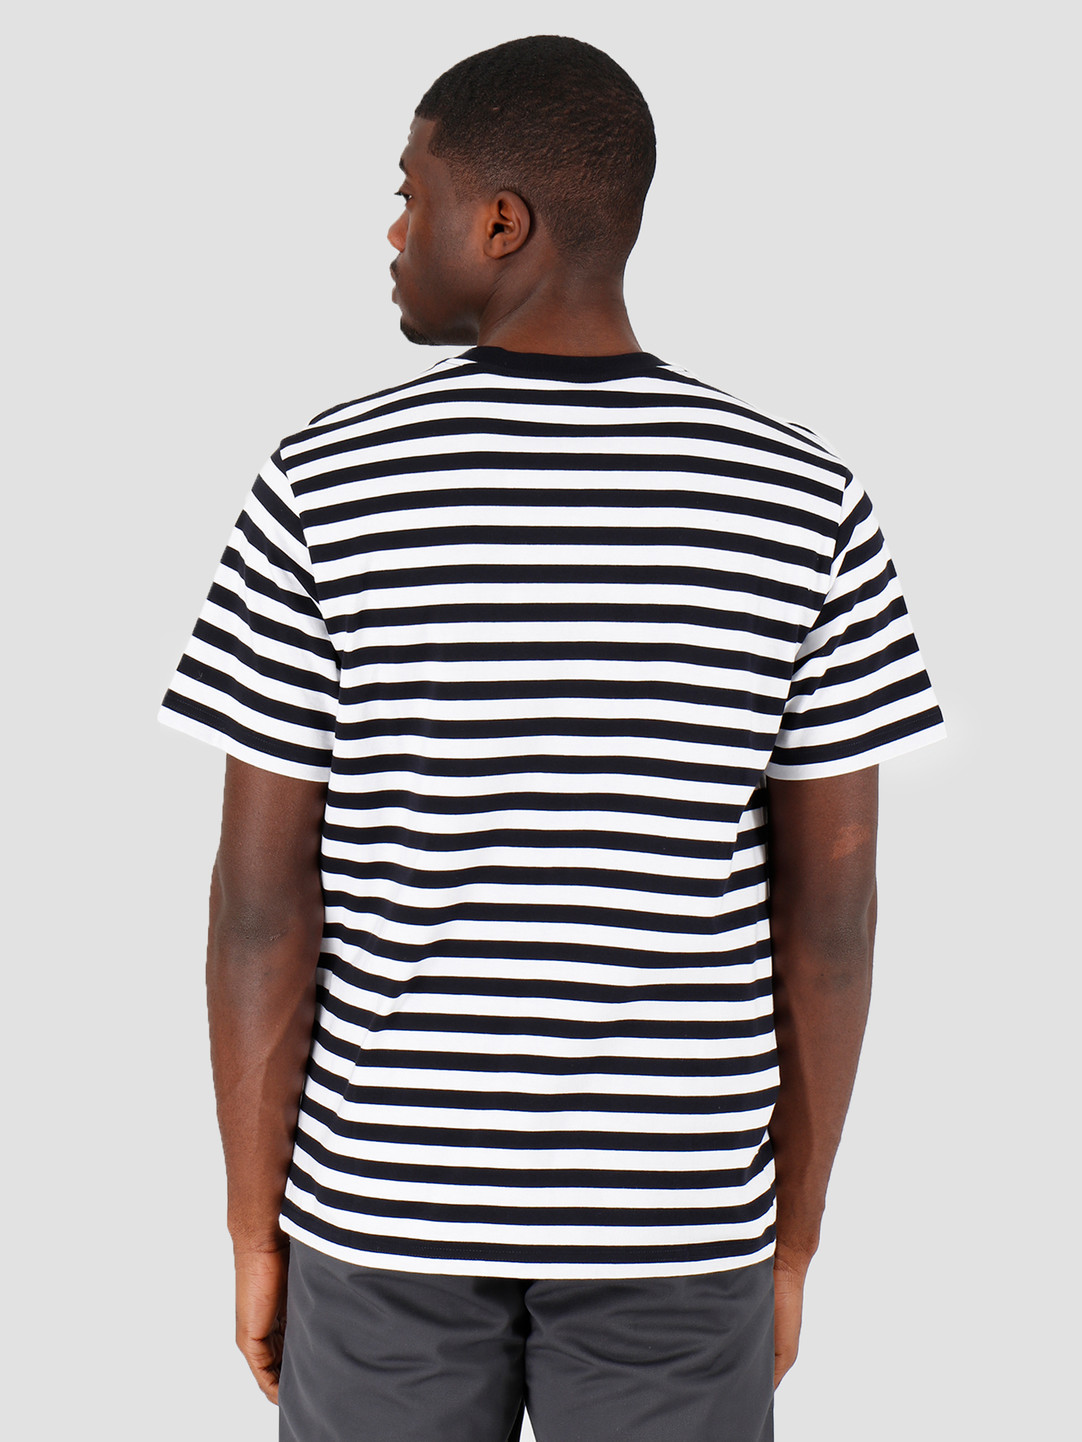 Carhartt WIP Carhartt WIP Scotty Pocket T-Shirt Scotty Stripe Dark Navy White I027732-1C1A